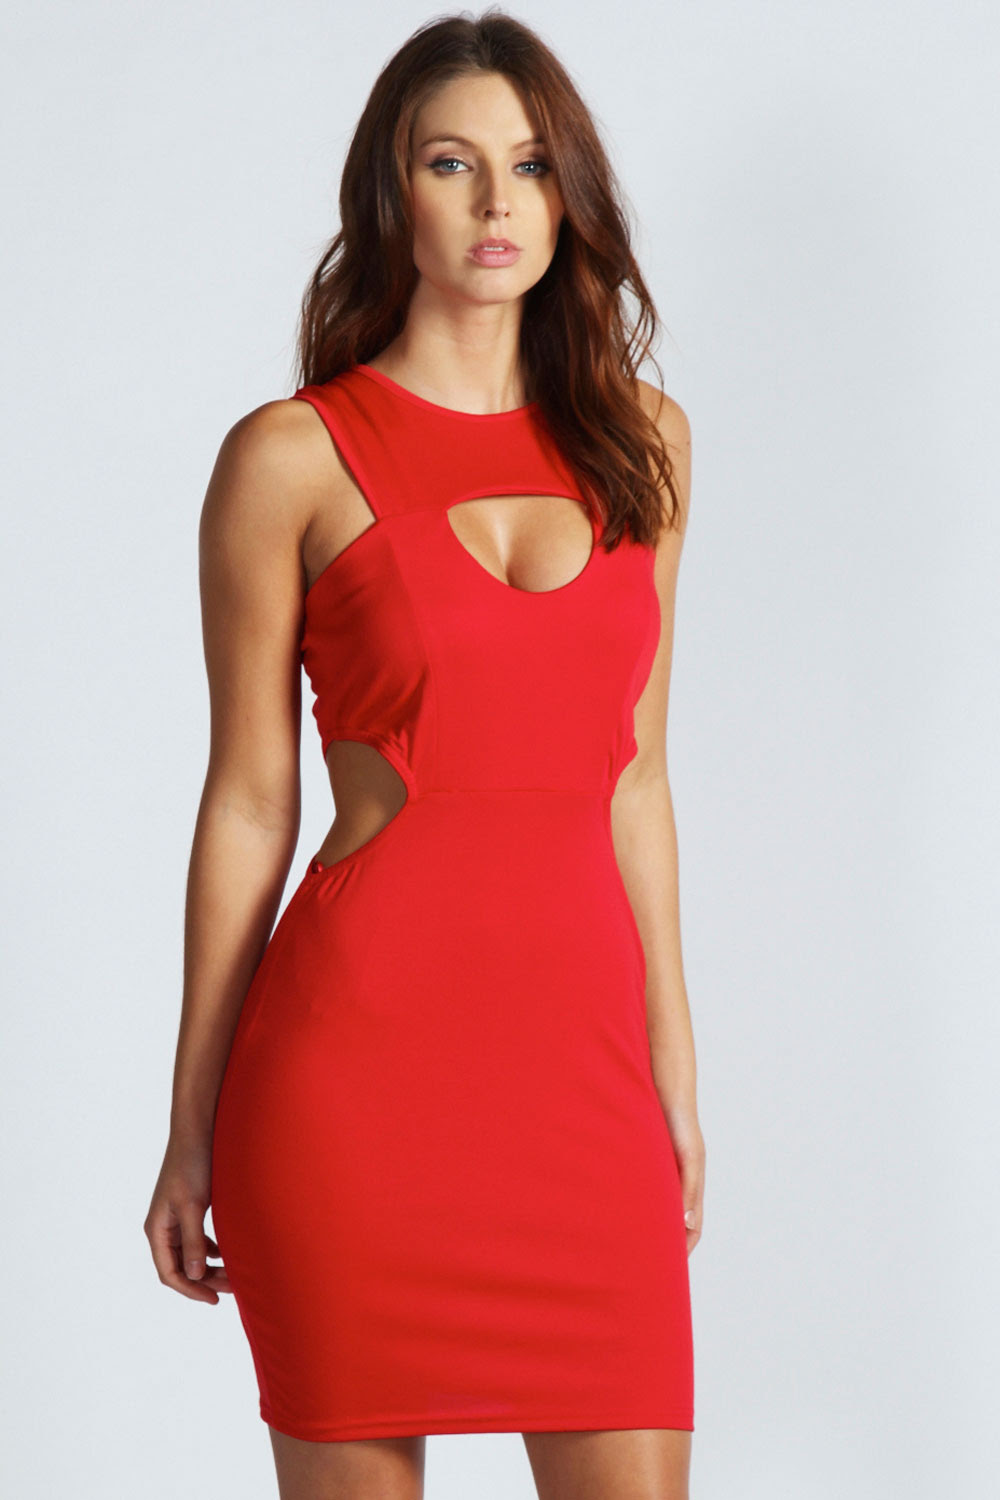 Bodycon dress for skinny girl up images next